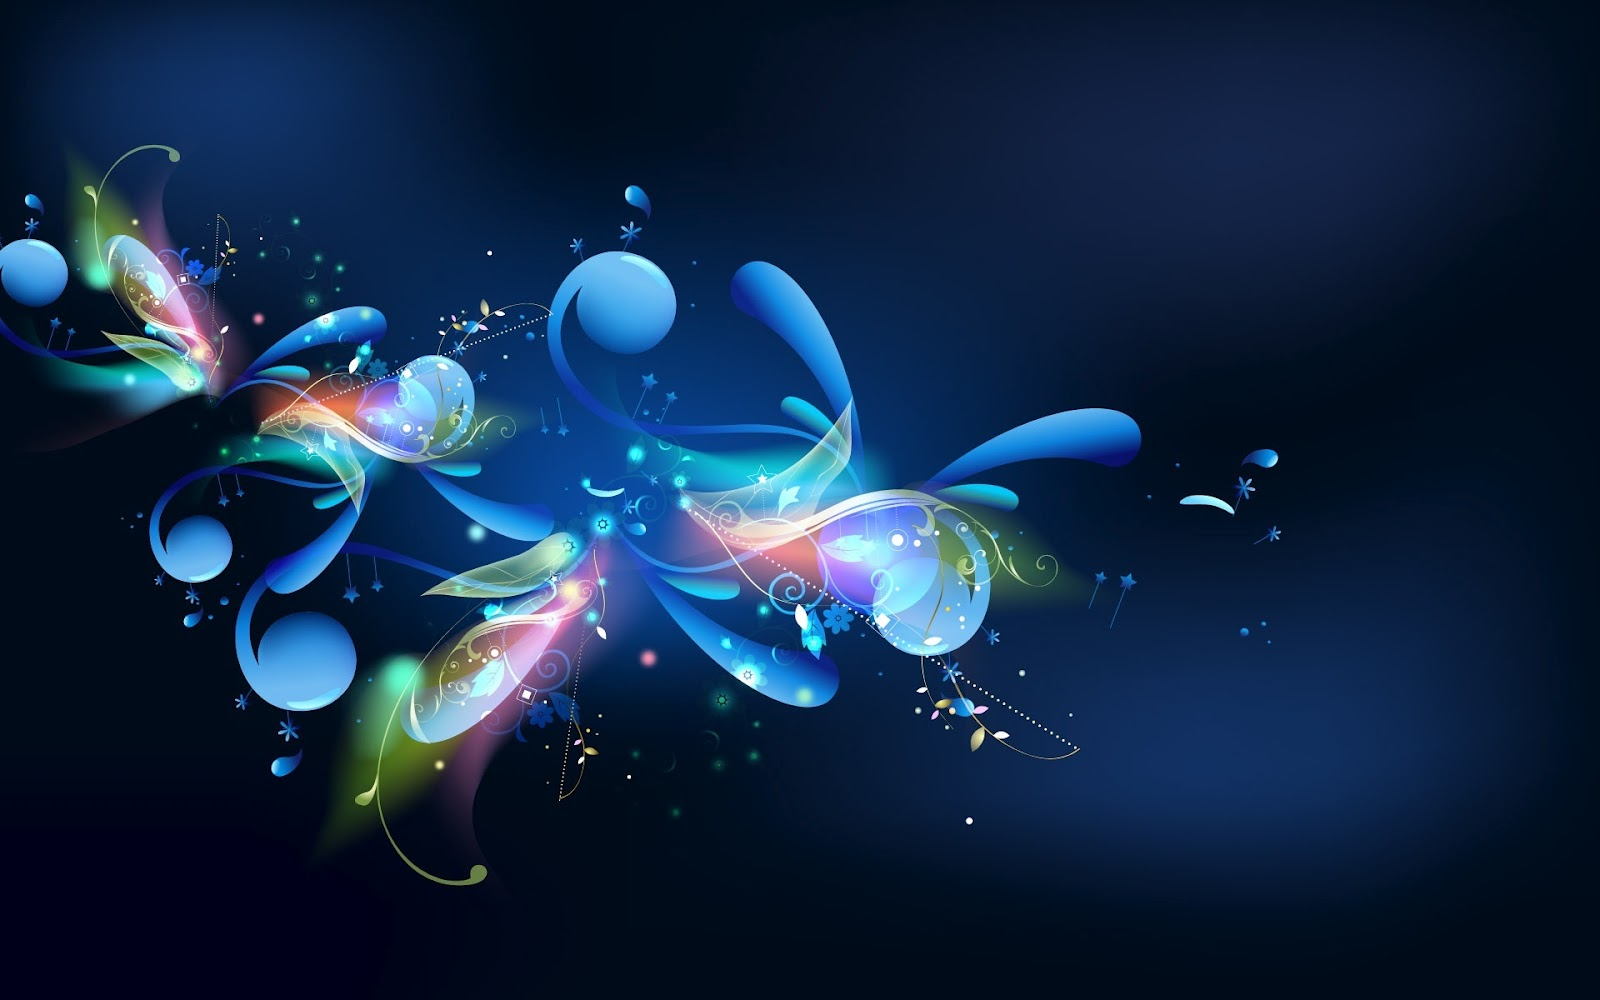 Windows 8 HD Wallpapers Backgrounds HQ Wallpapers - Free Wallpapers ...